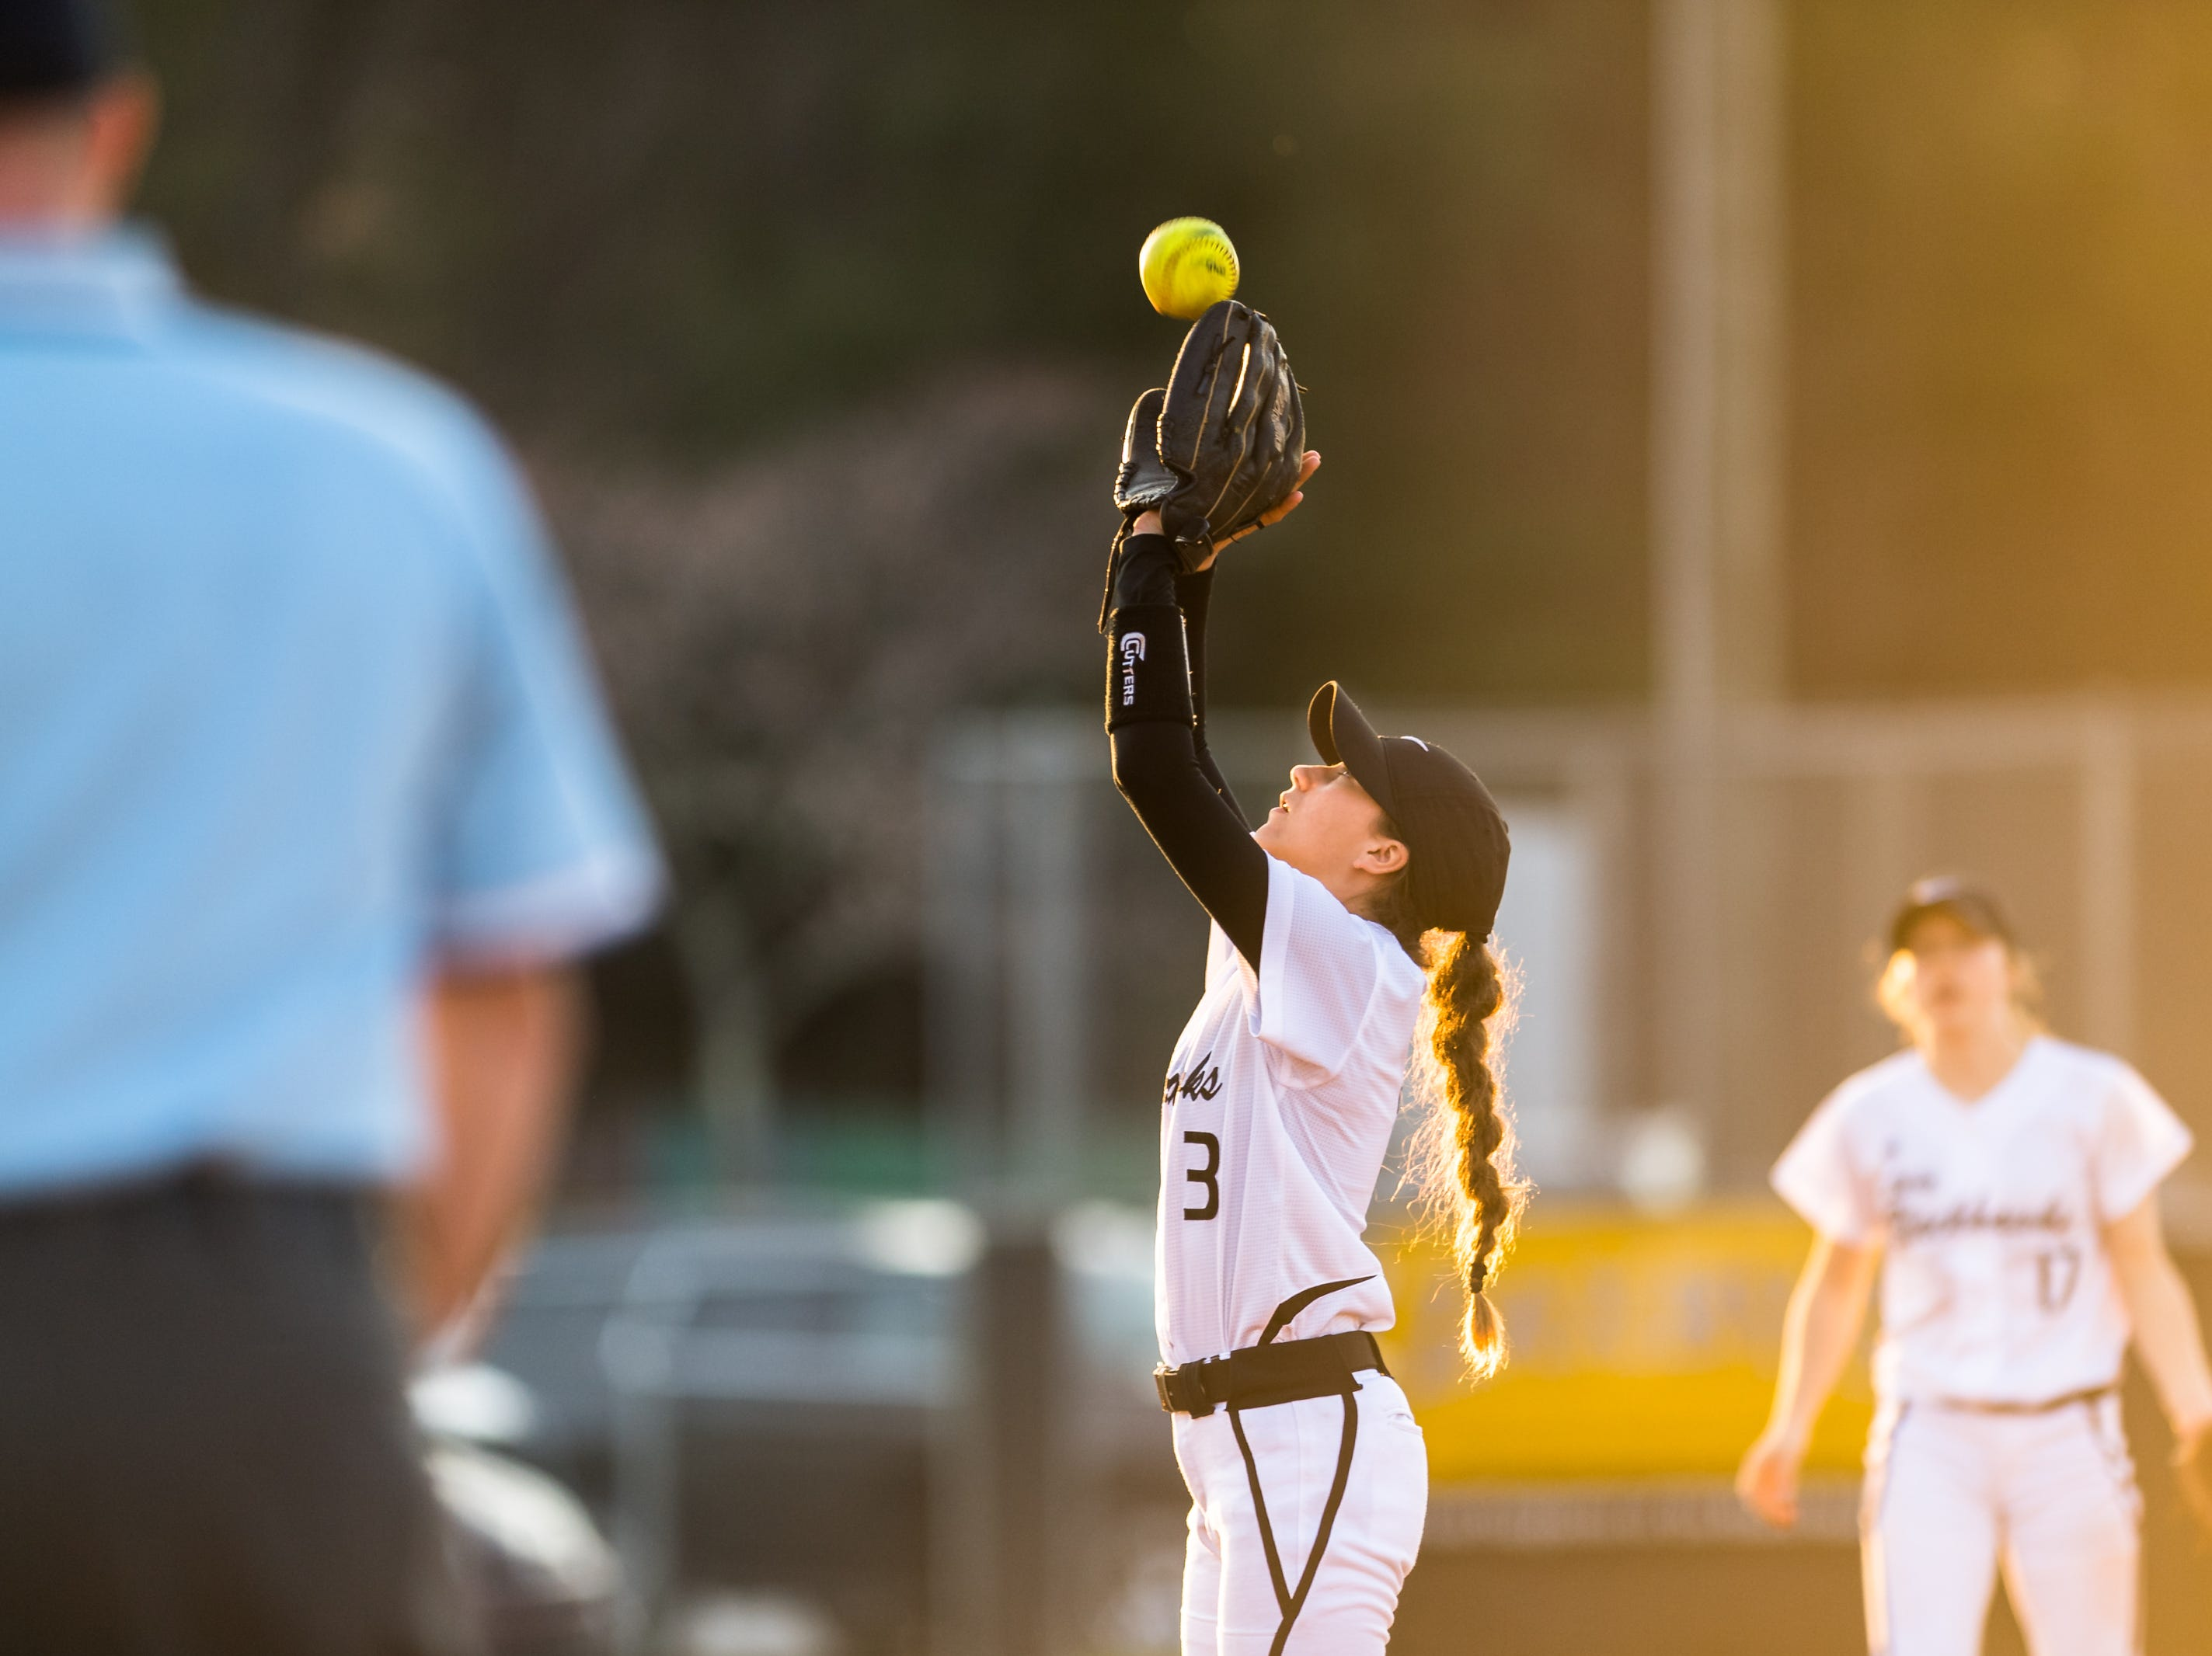 North Buncombe's Abigail Cook makes a catch for an out during their game against Reynolds Friday, March 16, 2018. North Buncombe defeated Reynolds 2-0 in seven innings.